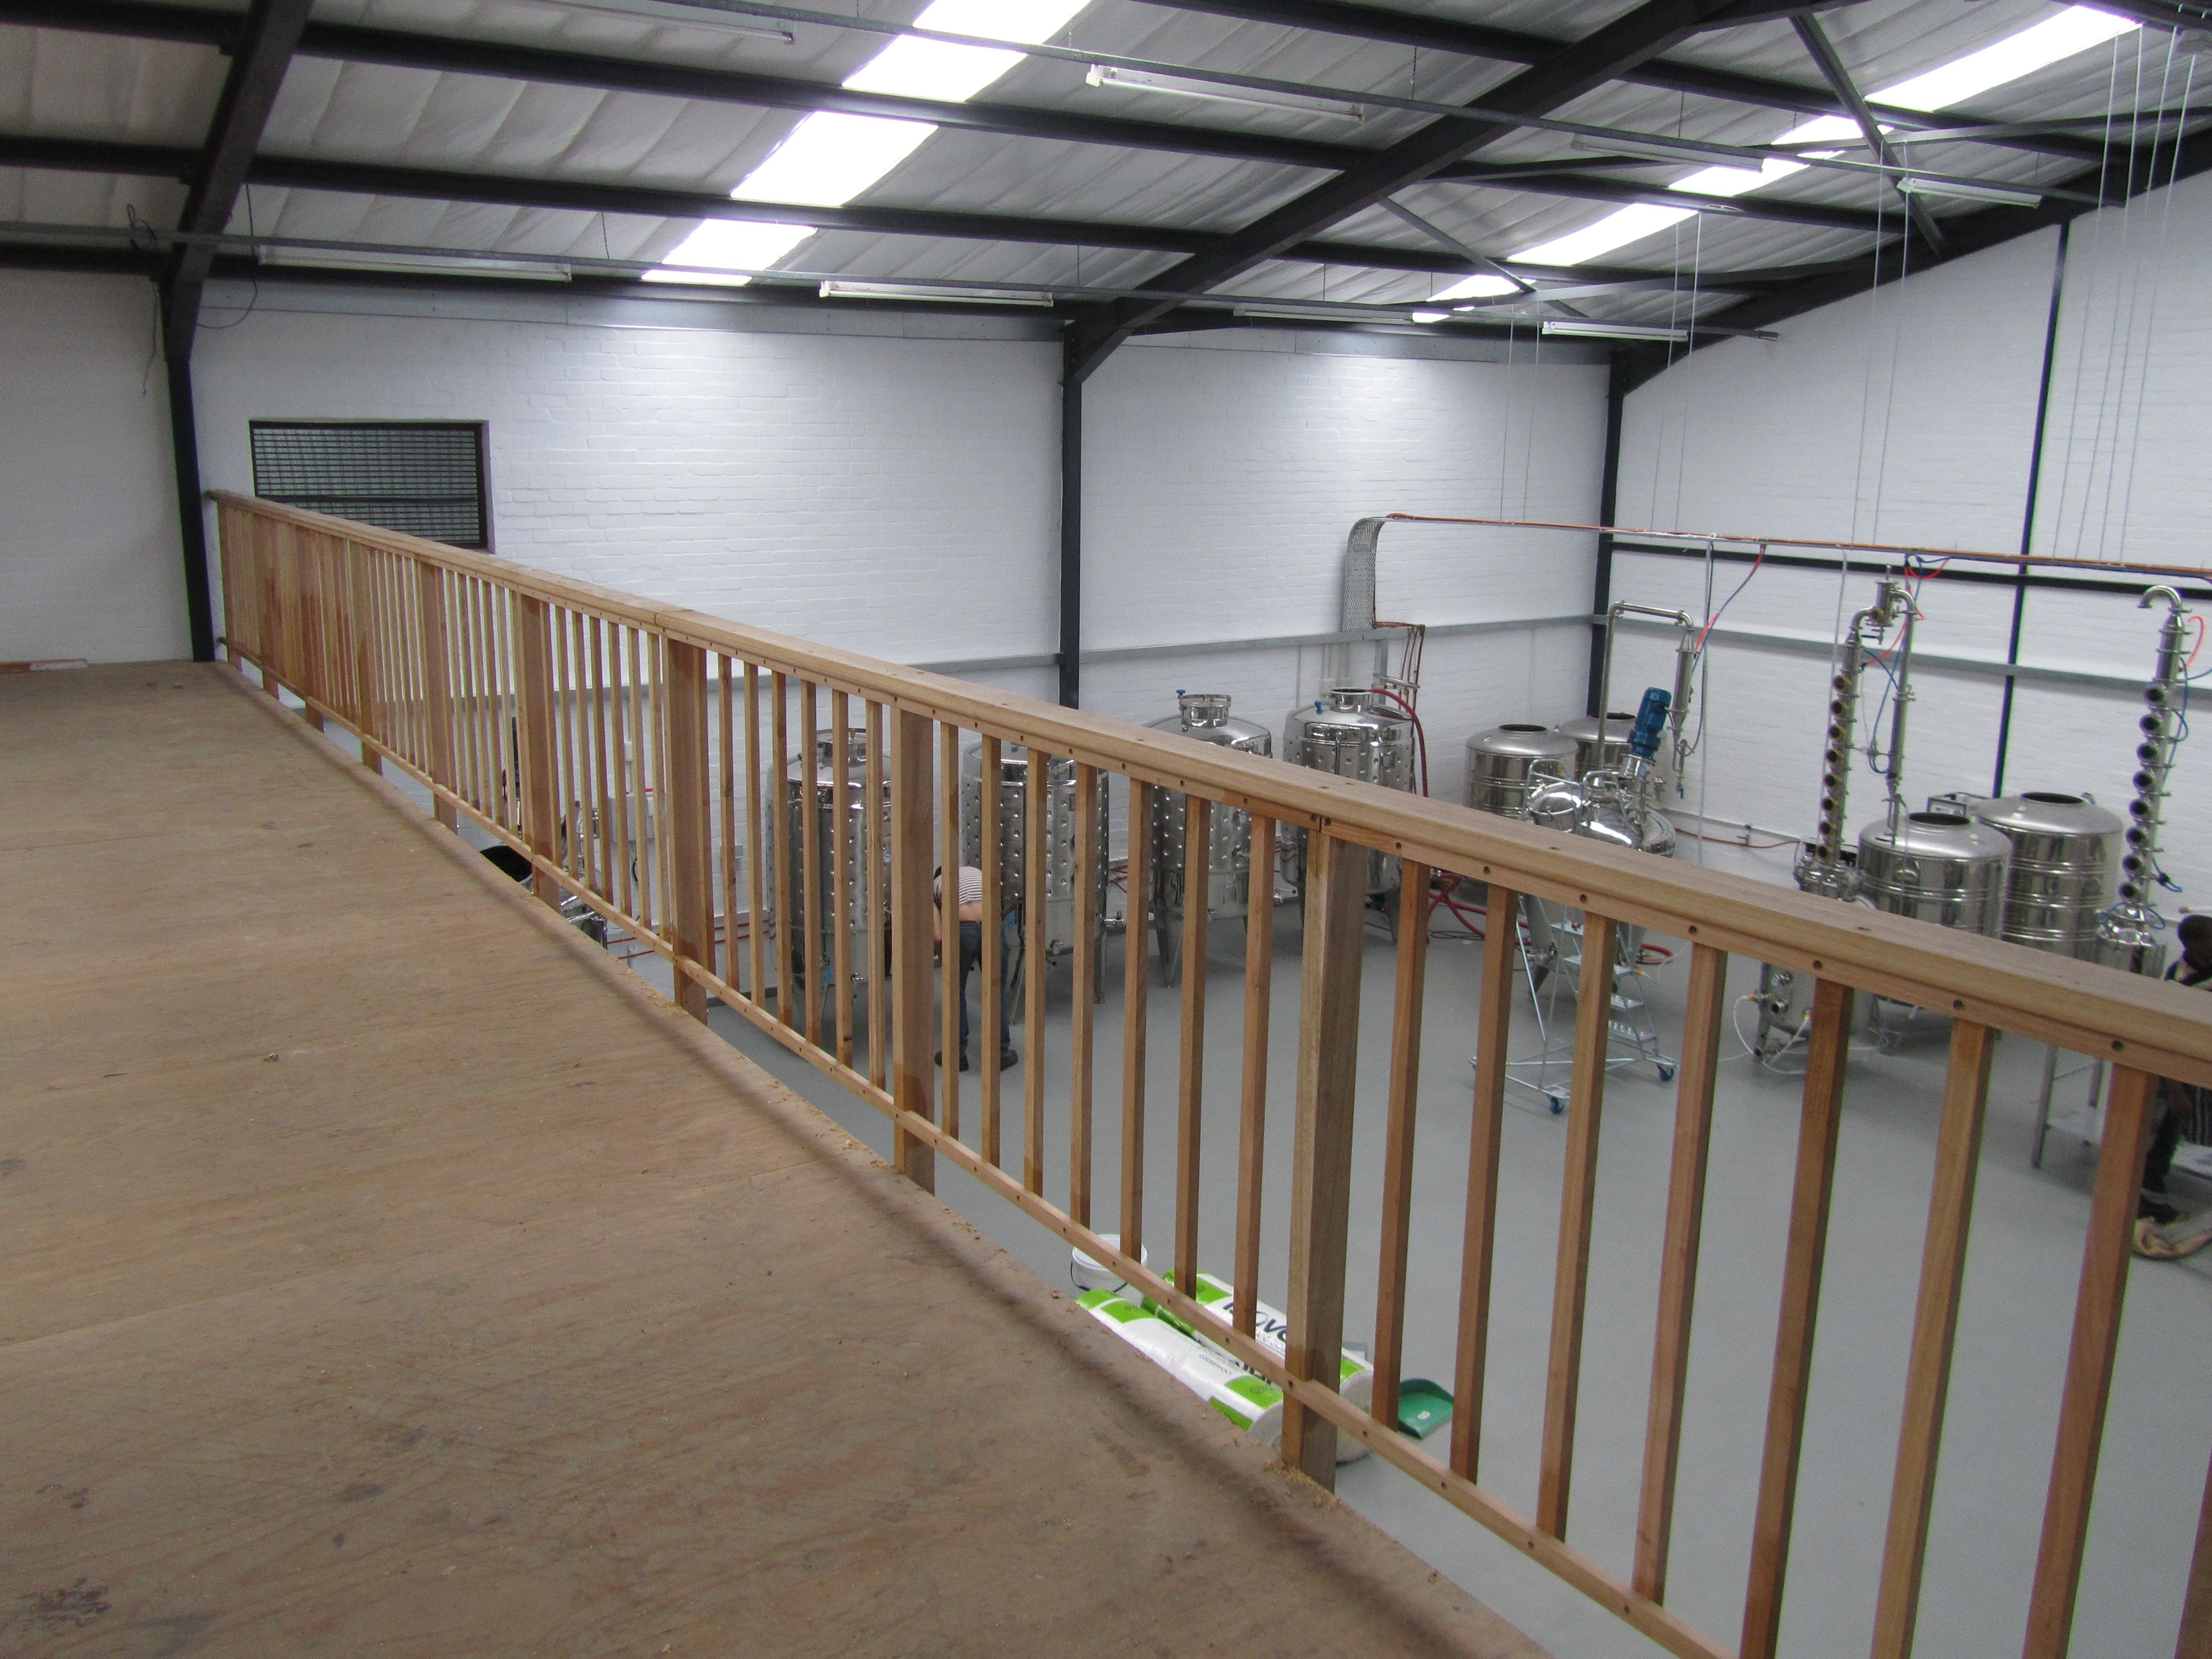 The new balustrade is nearly done